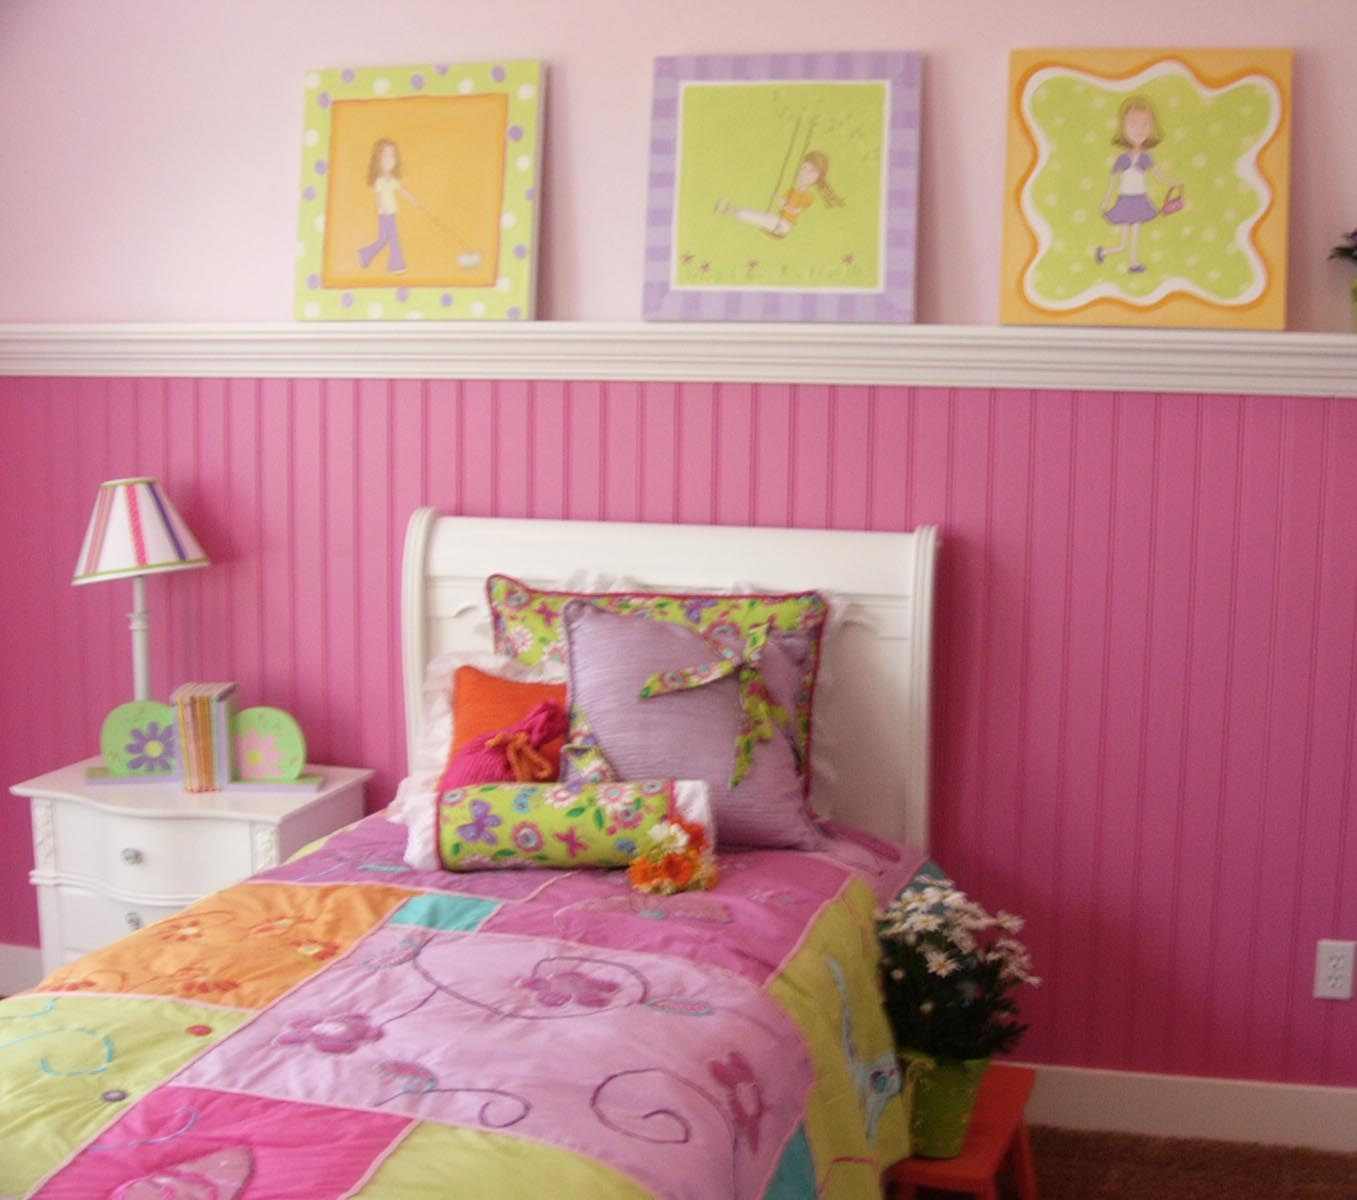 pink bedroom design and decorating ideas for children and pink bedroom decorations decoration ideas